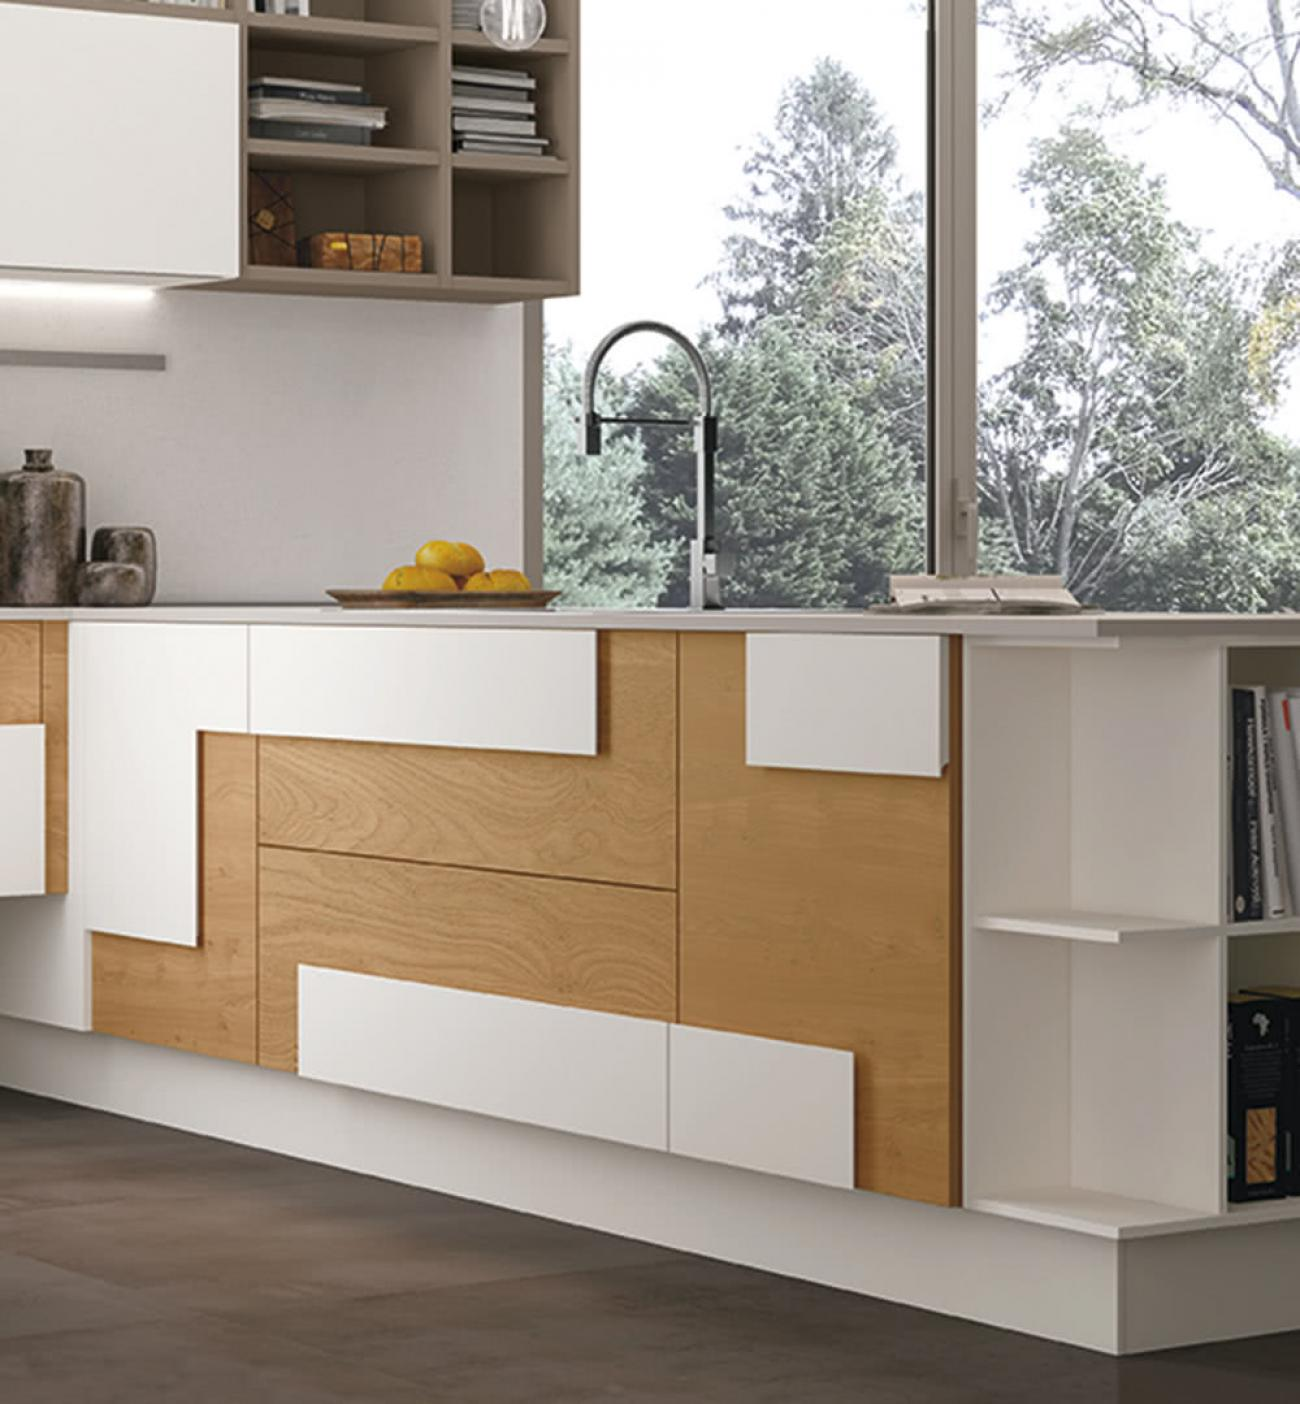 Modern Kitchens - Creativa - 01